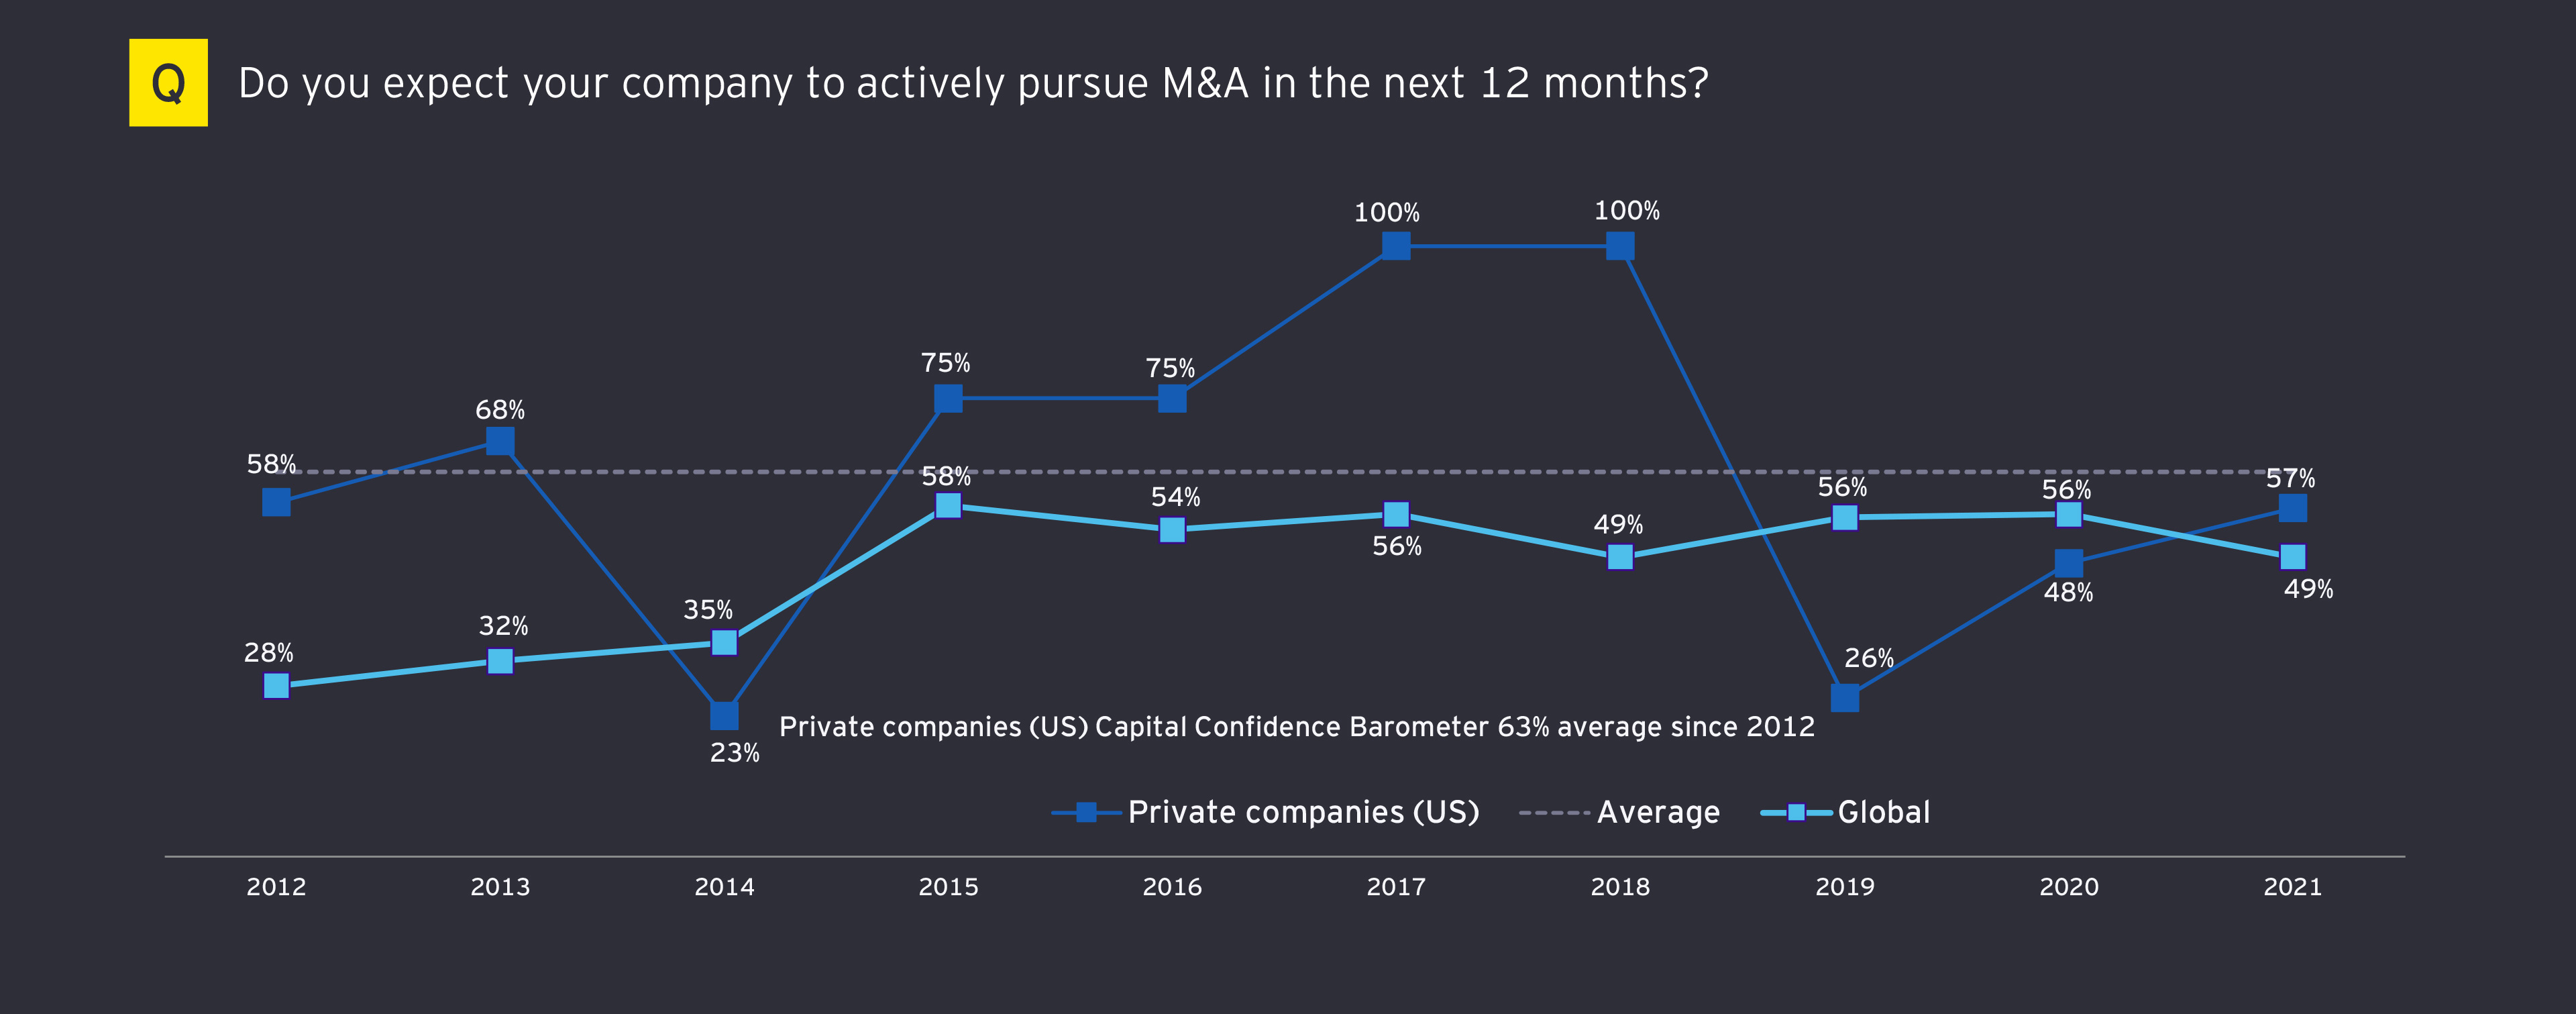 Mar chart of expectations of comany to actively pursue M&A in the next 12 months